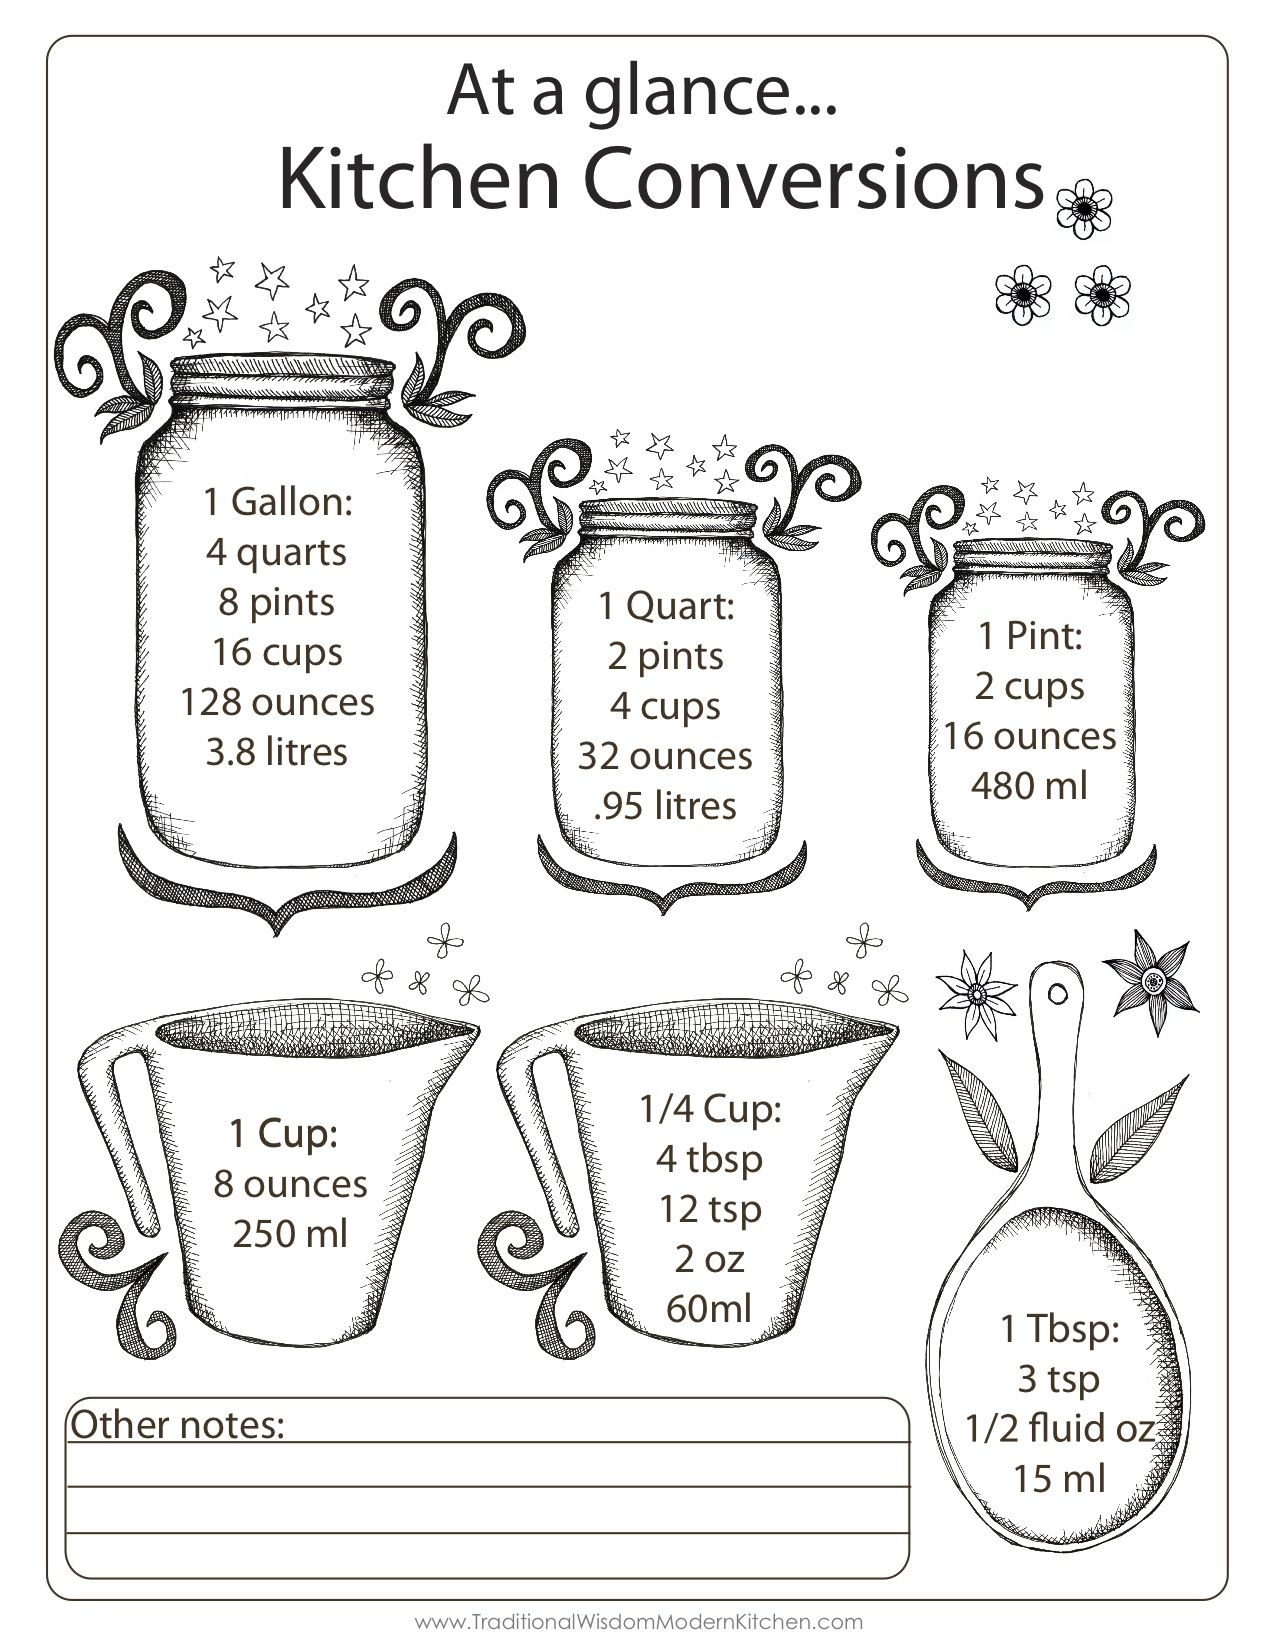 Cute Amp Handy Kitchen Conversions Chart In